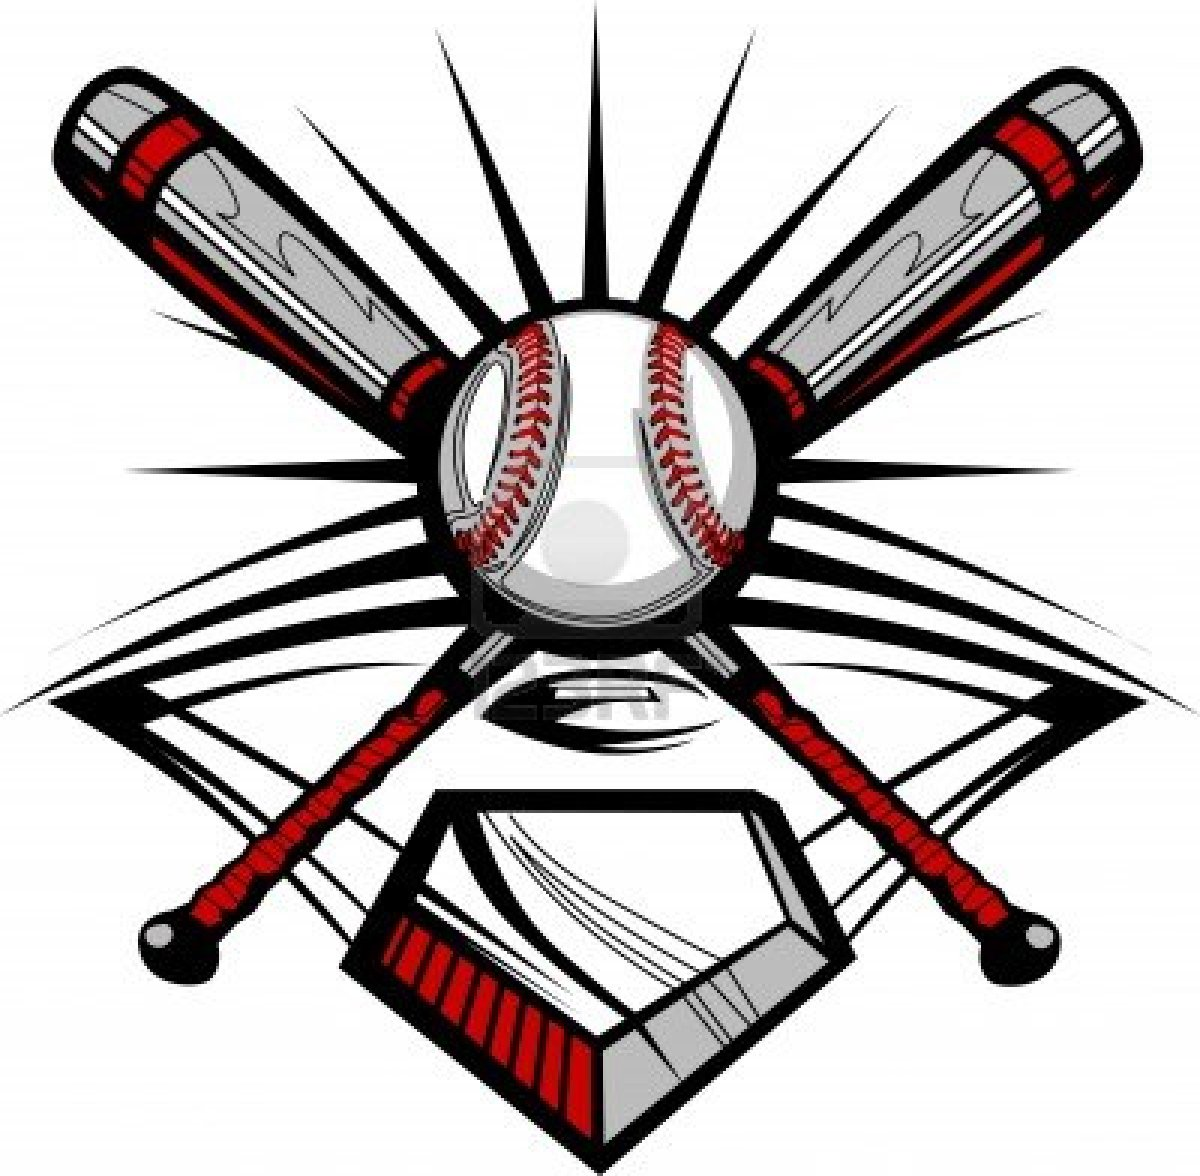 softball clipart at getdrawings com free for personal use softball rh getdrawings com yellow softball clipart free softball clipart images